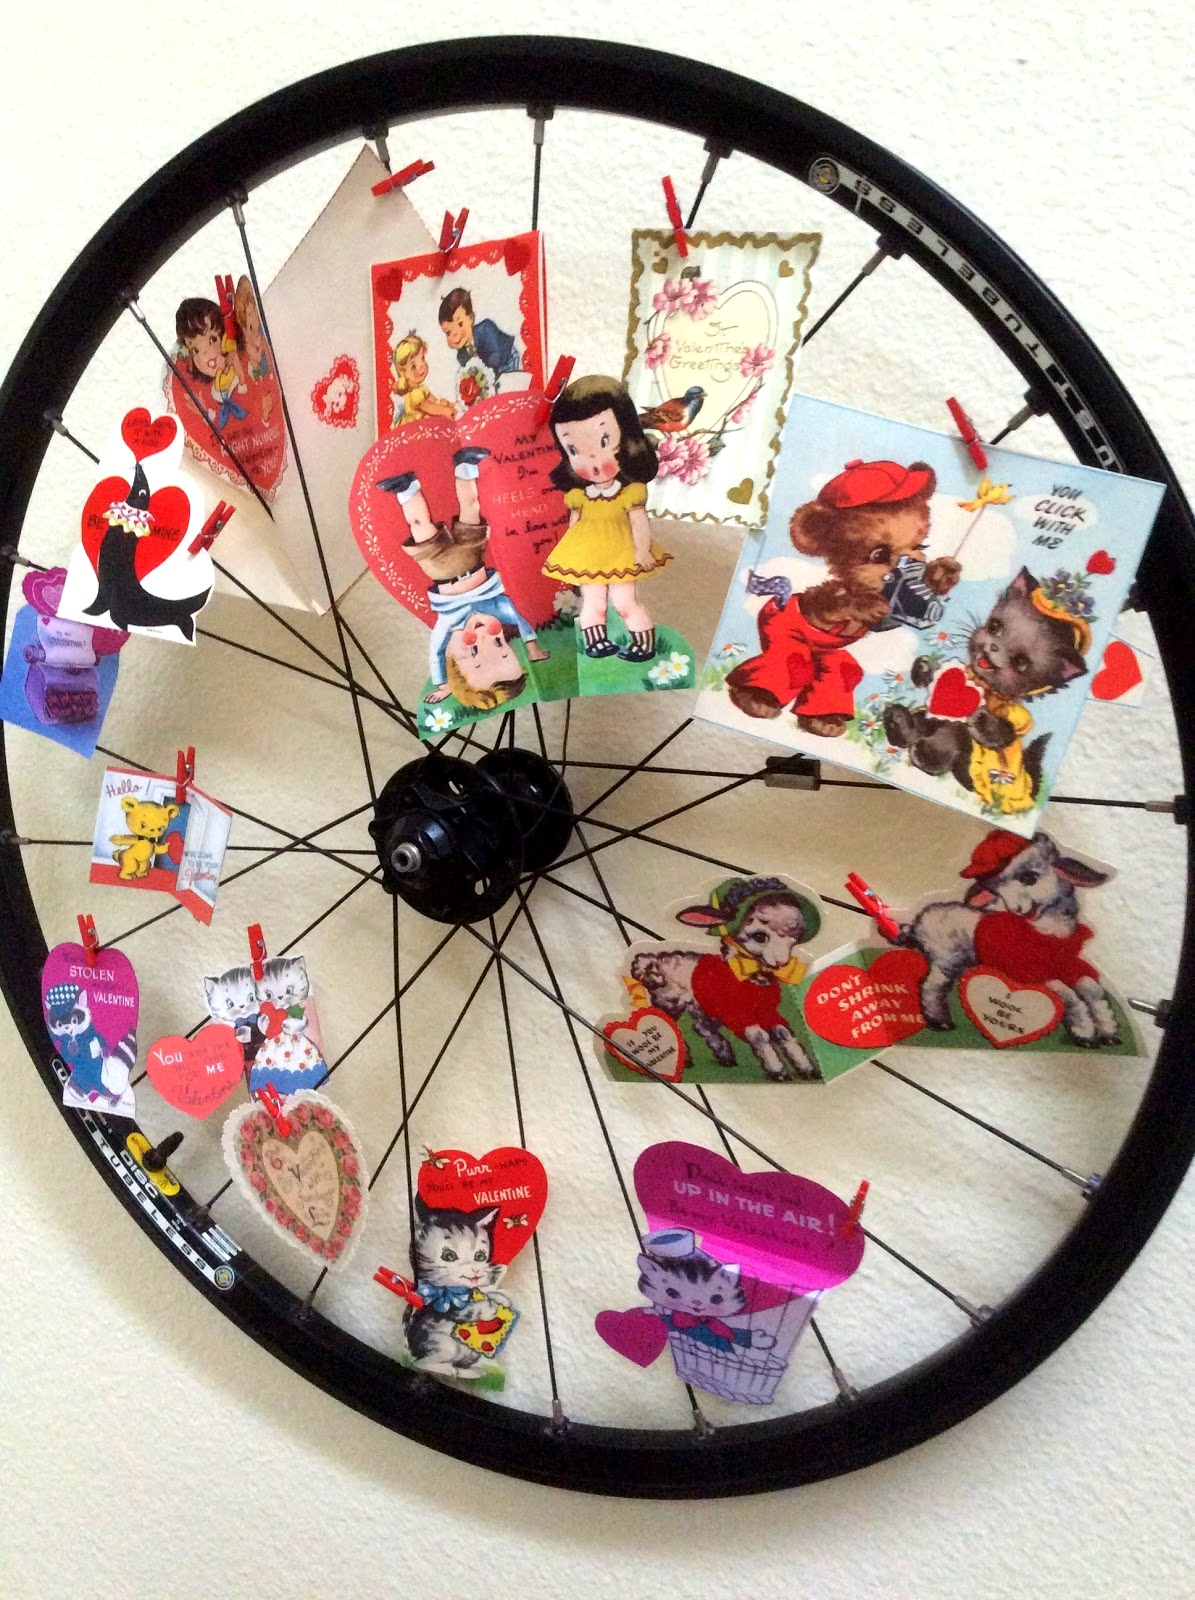 Valentine's Day card bike wheel display by Fresh Vintage by Lisa S, featured on Funky Junk Interiors